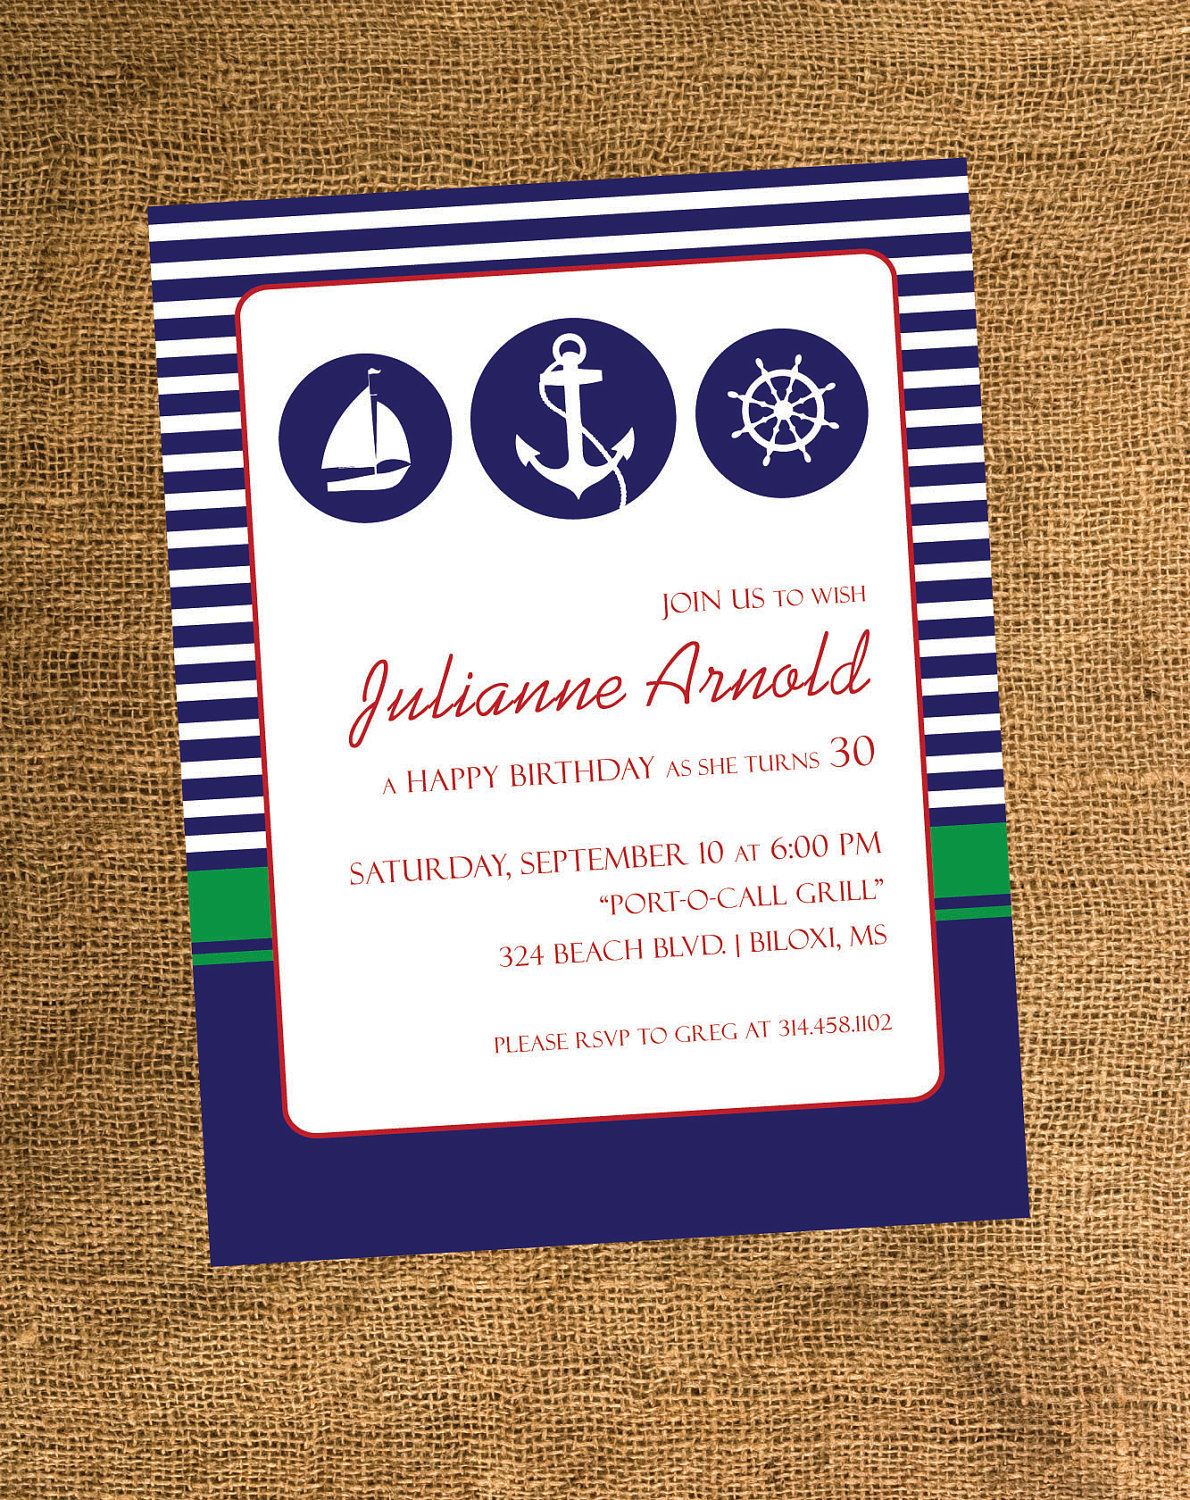 Nautical Theme Adult Birthday Party Invitations 1500 Via Etsy